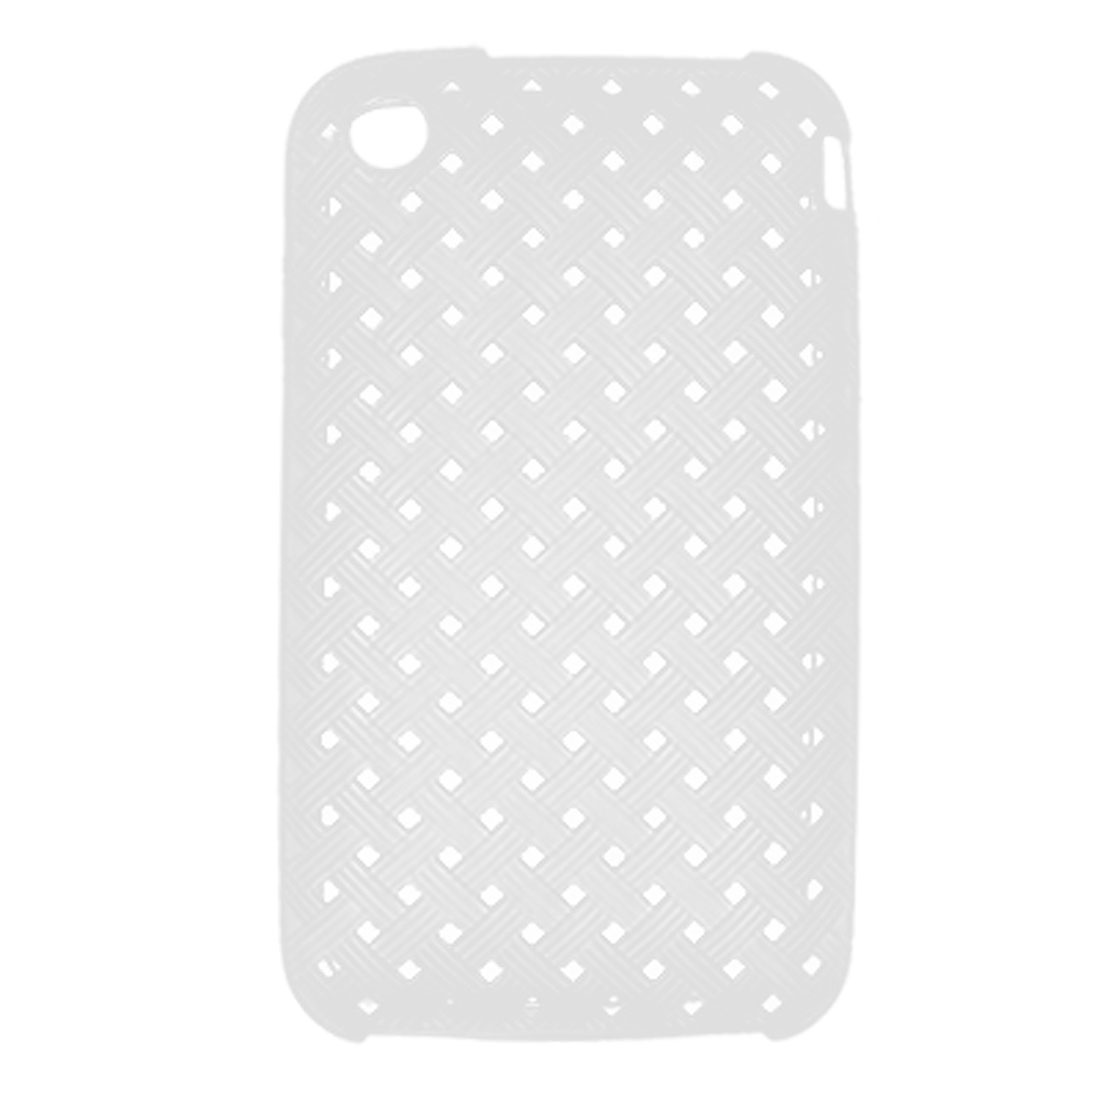 Nonslip White Soft Plastic Case Protector for iPhone 3G 3GS